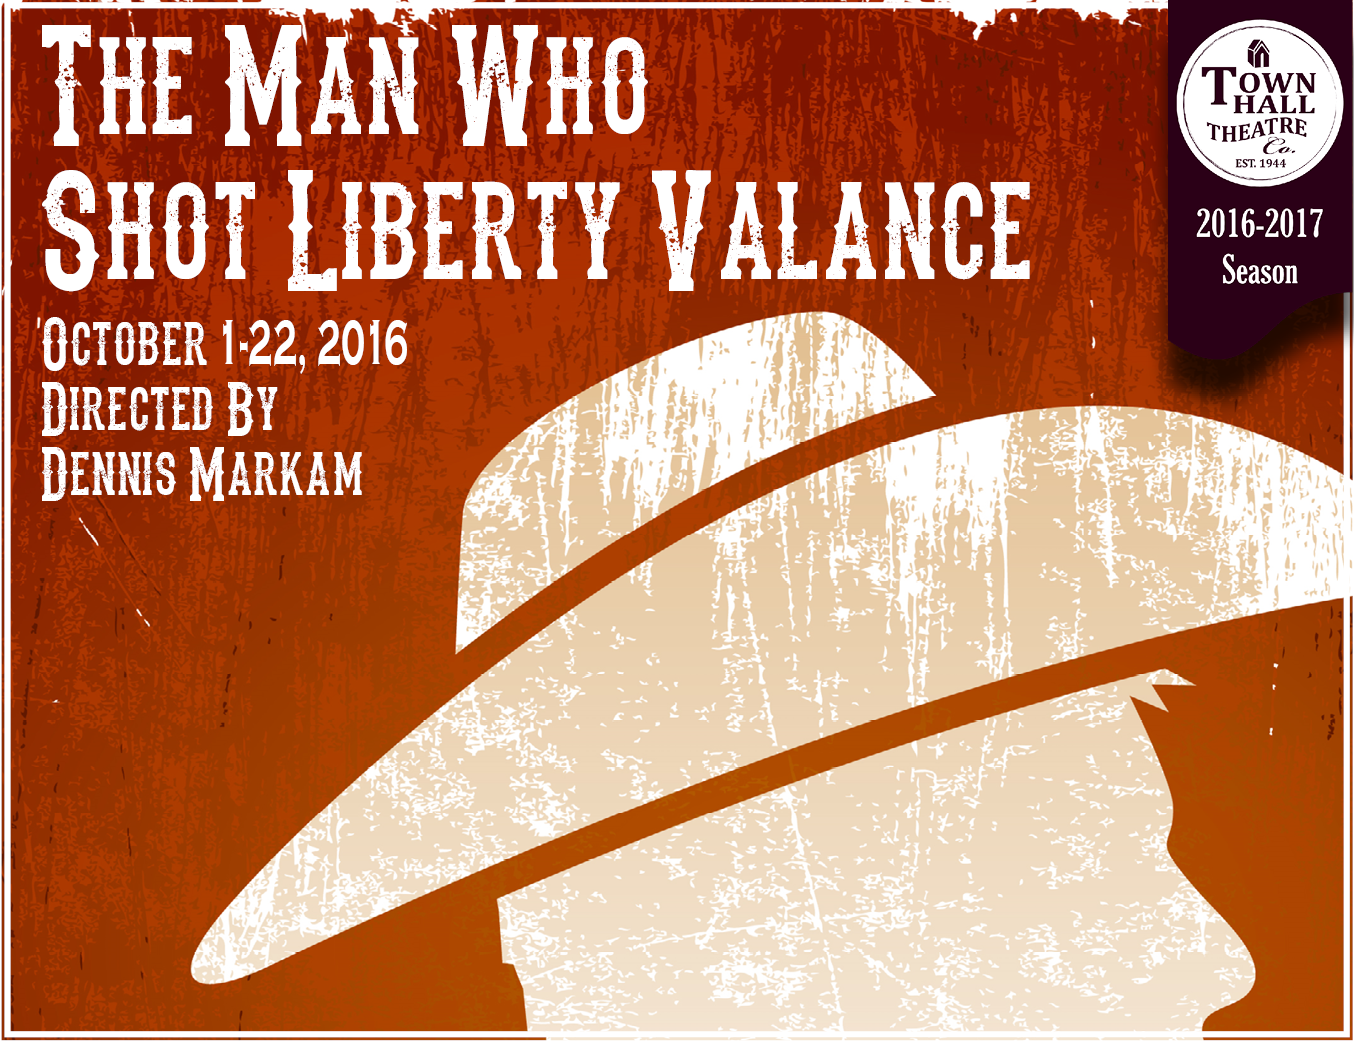 liberty-valance-quad-with-tht-logo-2.png